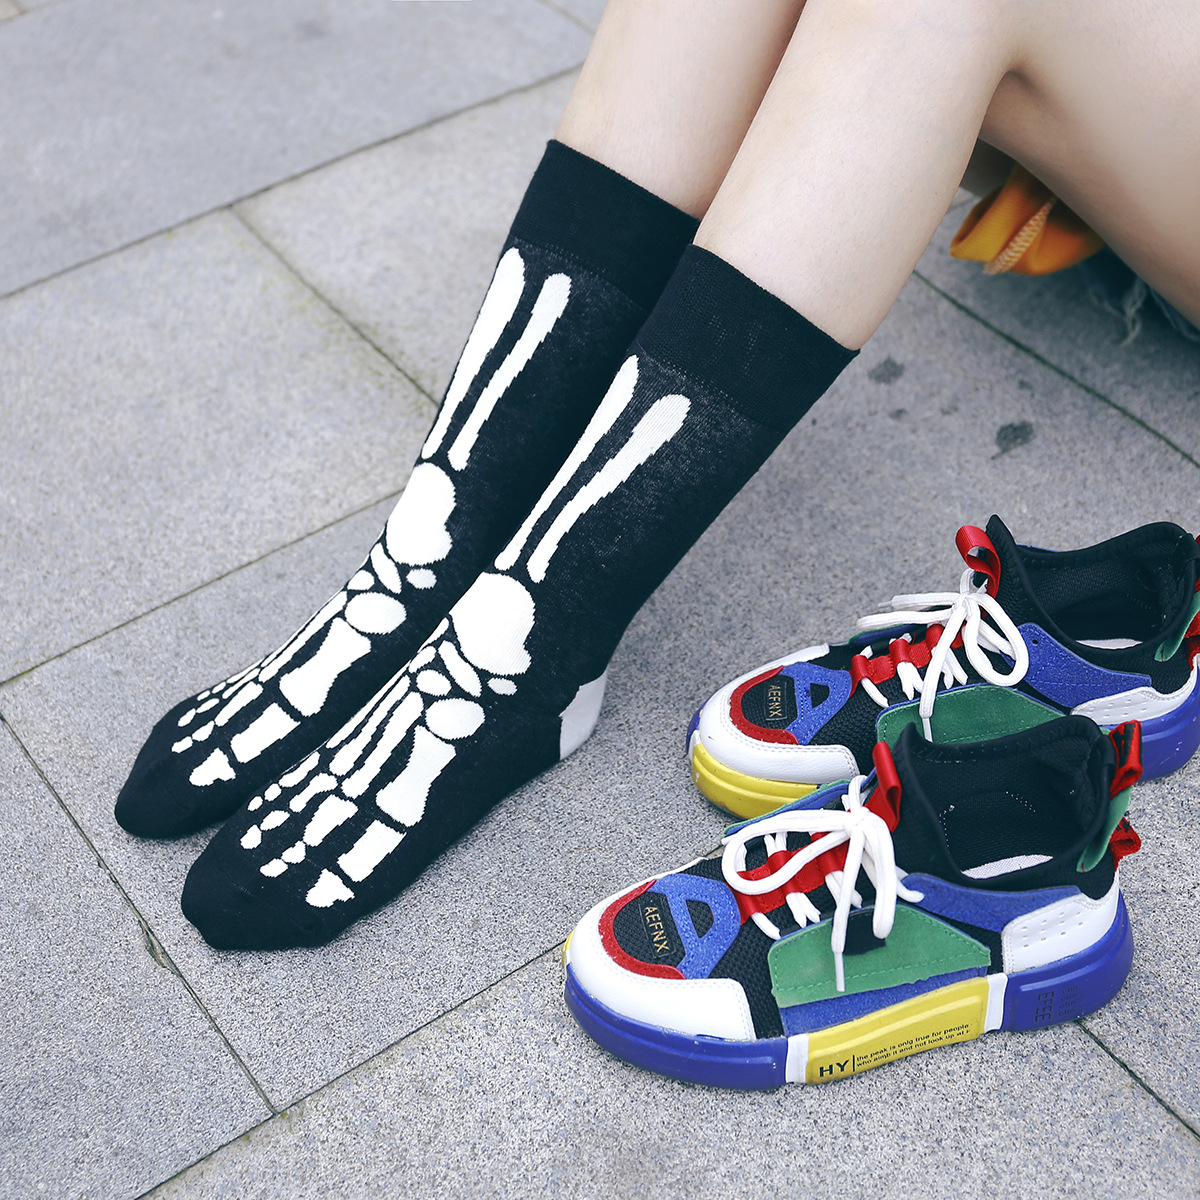 2020 Autumn And Winter Fashion Personality Men And Women In Tube Socks Socks Tide Colorful Ghost Bat Series